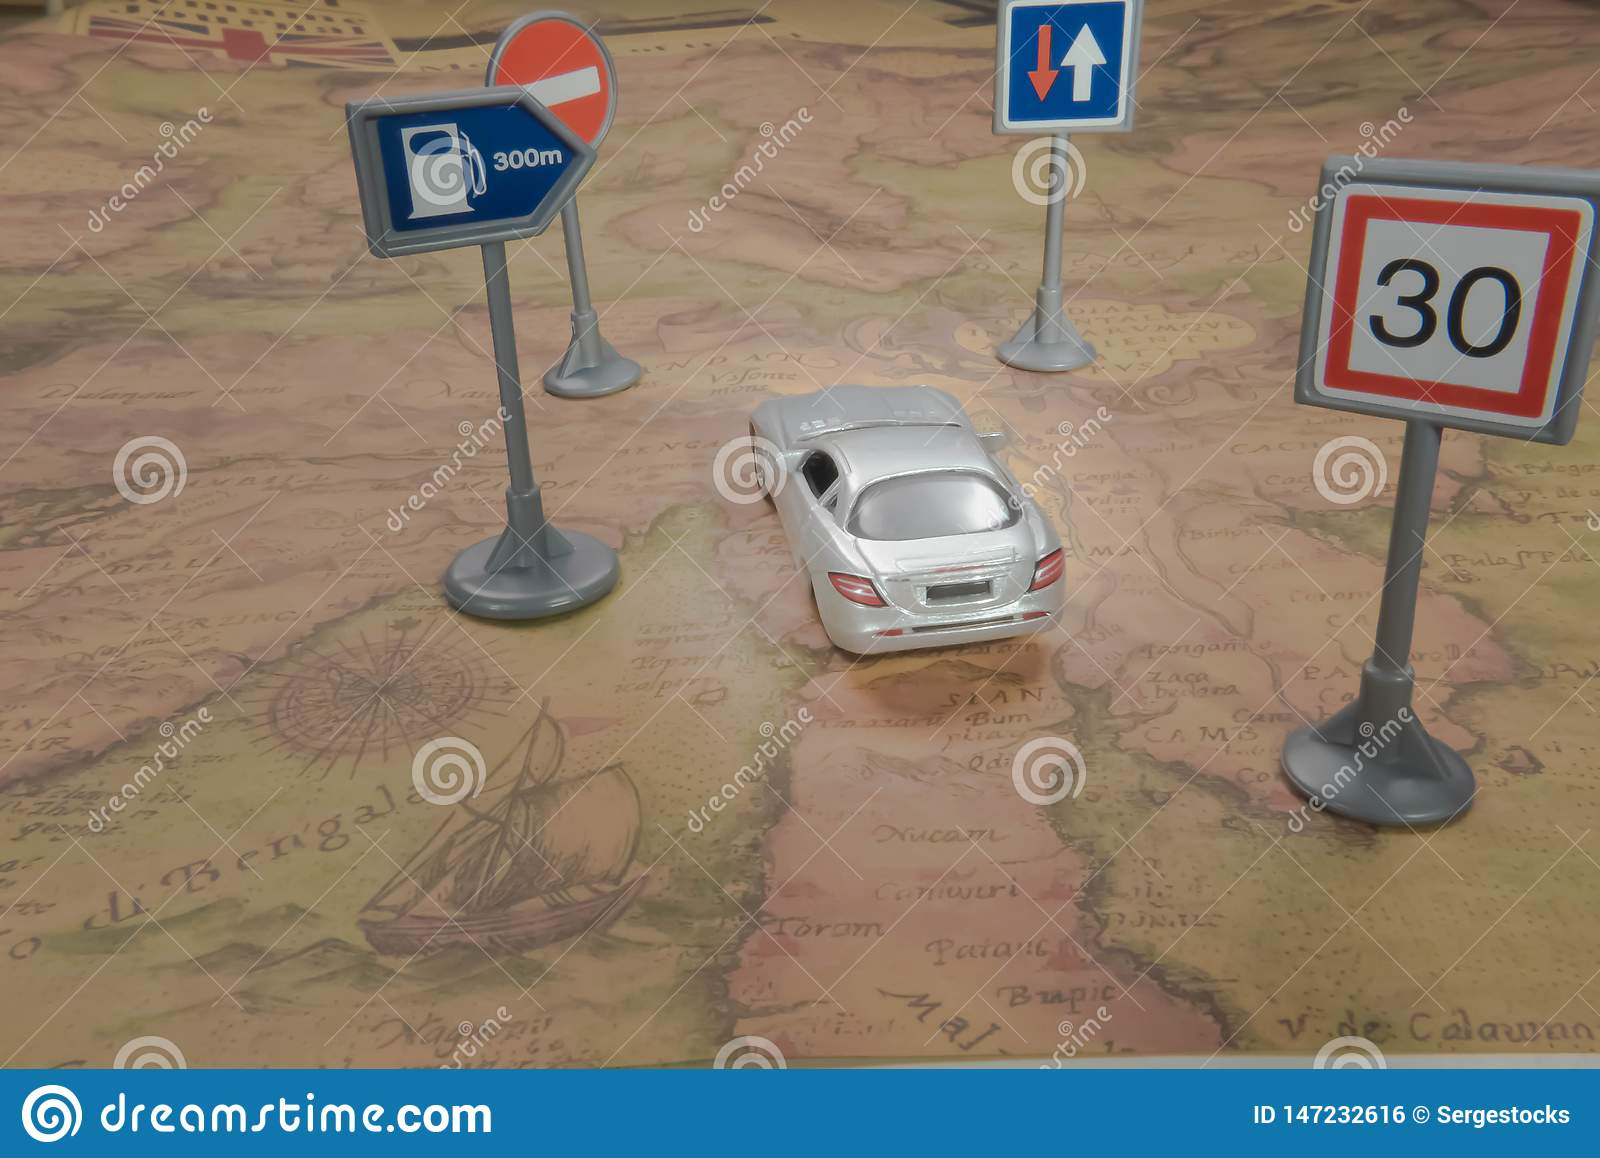 Travel concept. Toy car on vintage World map with road sign